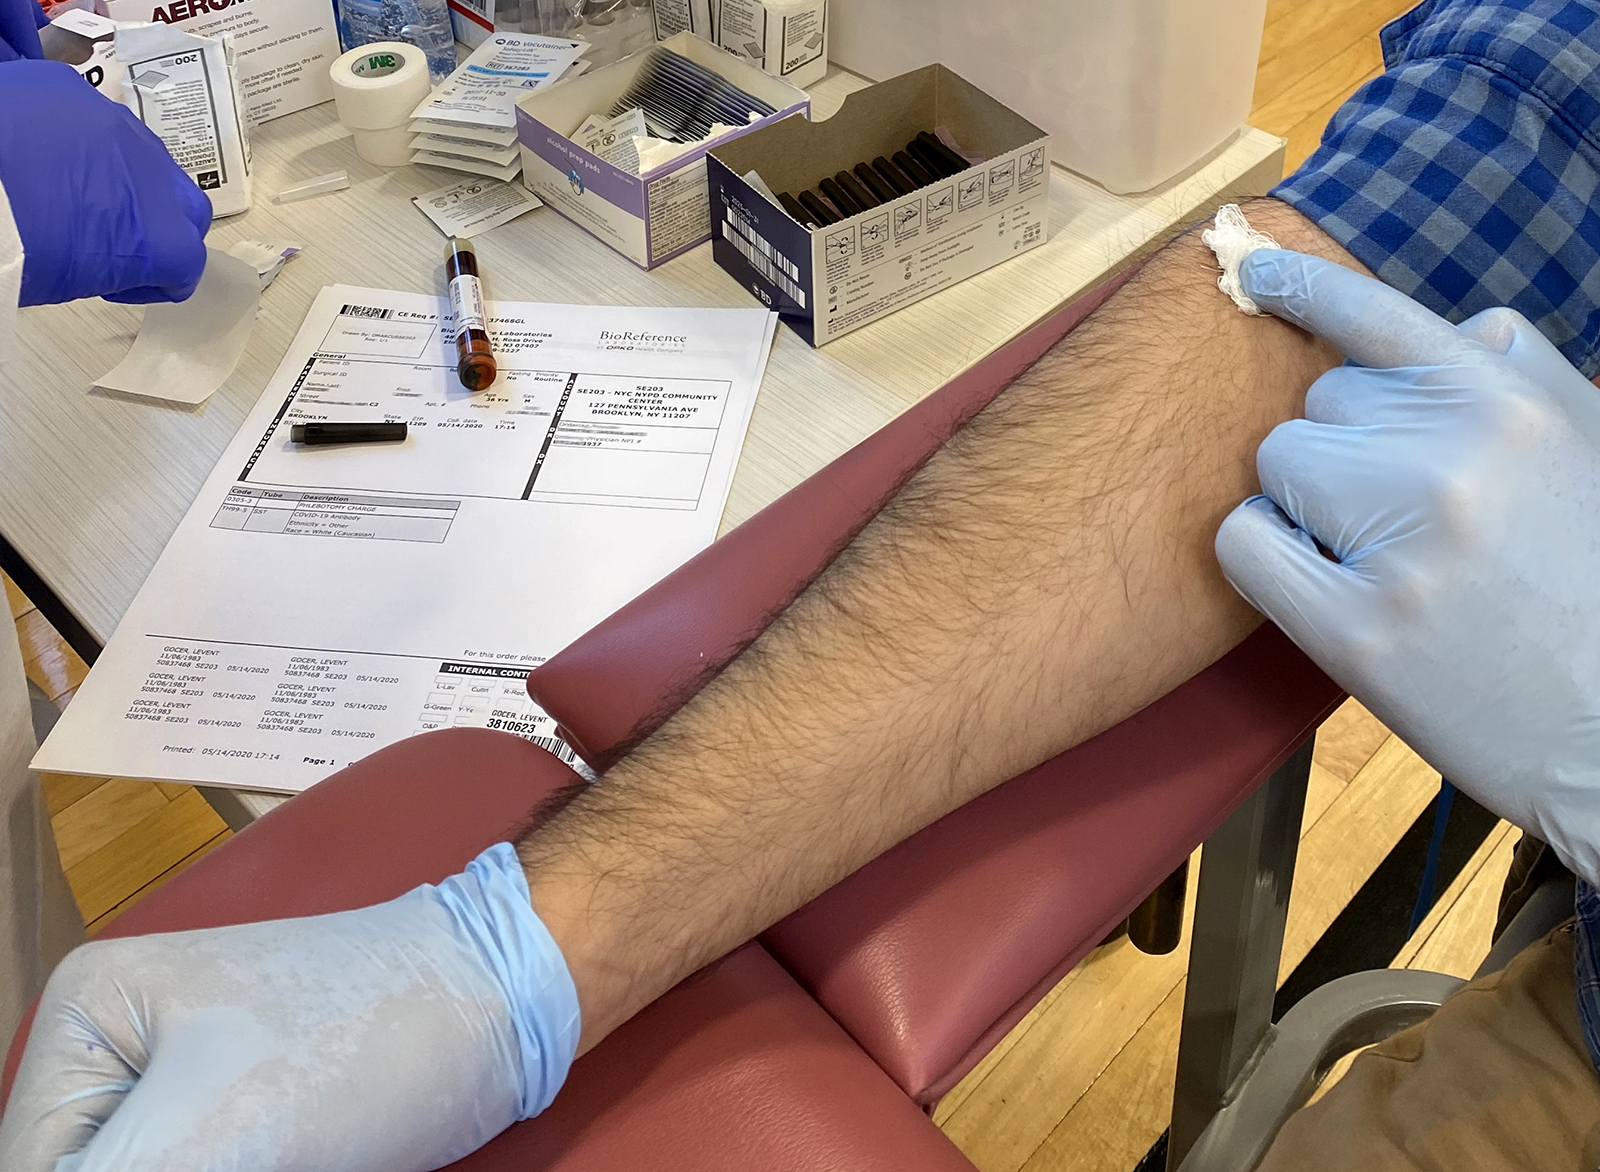 A man gets coronavirus antibody testing at the NYPD Community Center in Brooklyn, New York, on Friday, May 15.